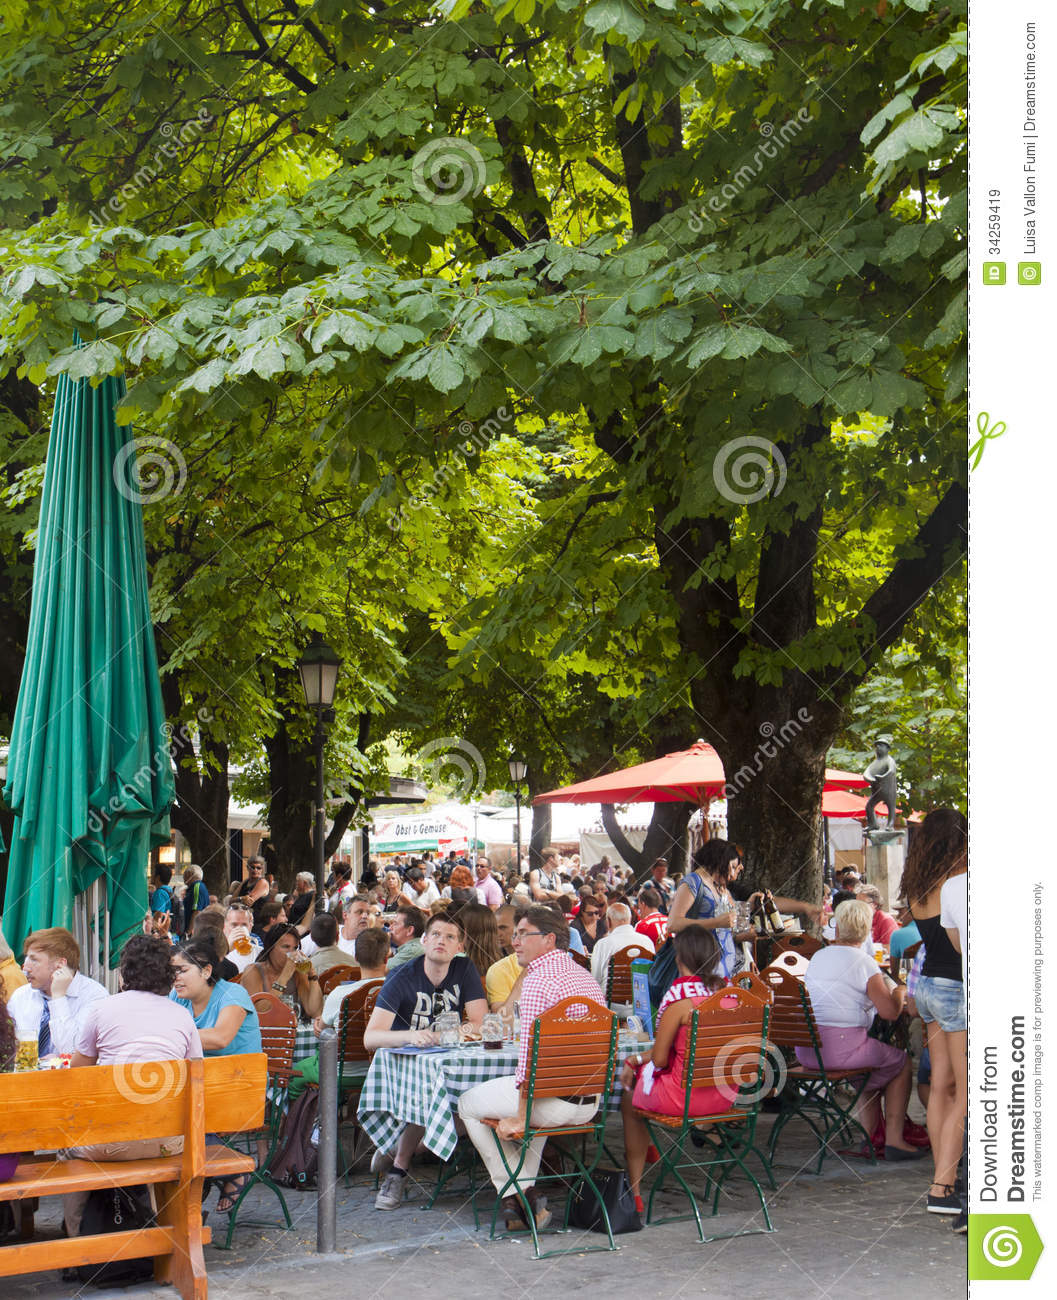 Munich, people at a typical open air restaurant